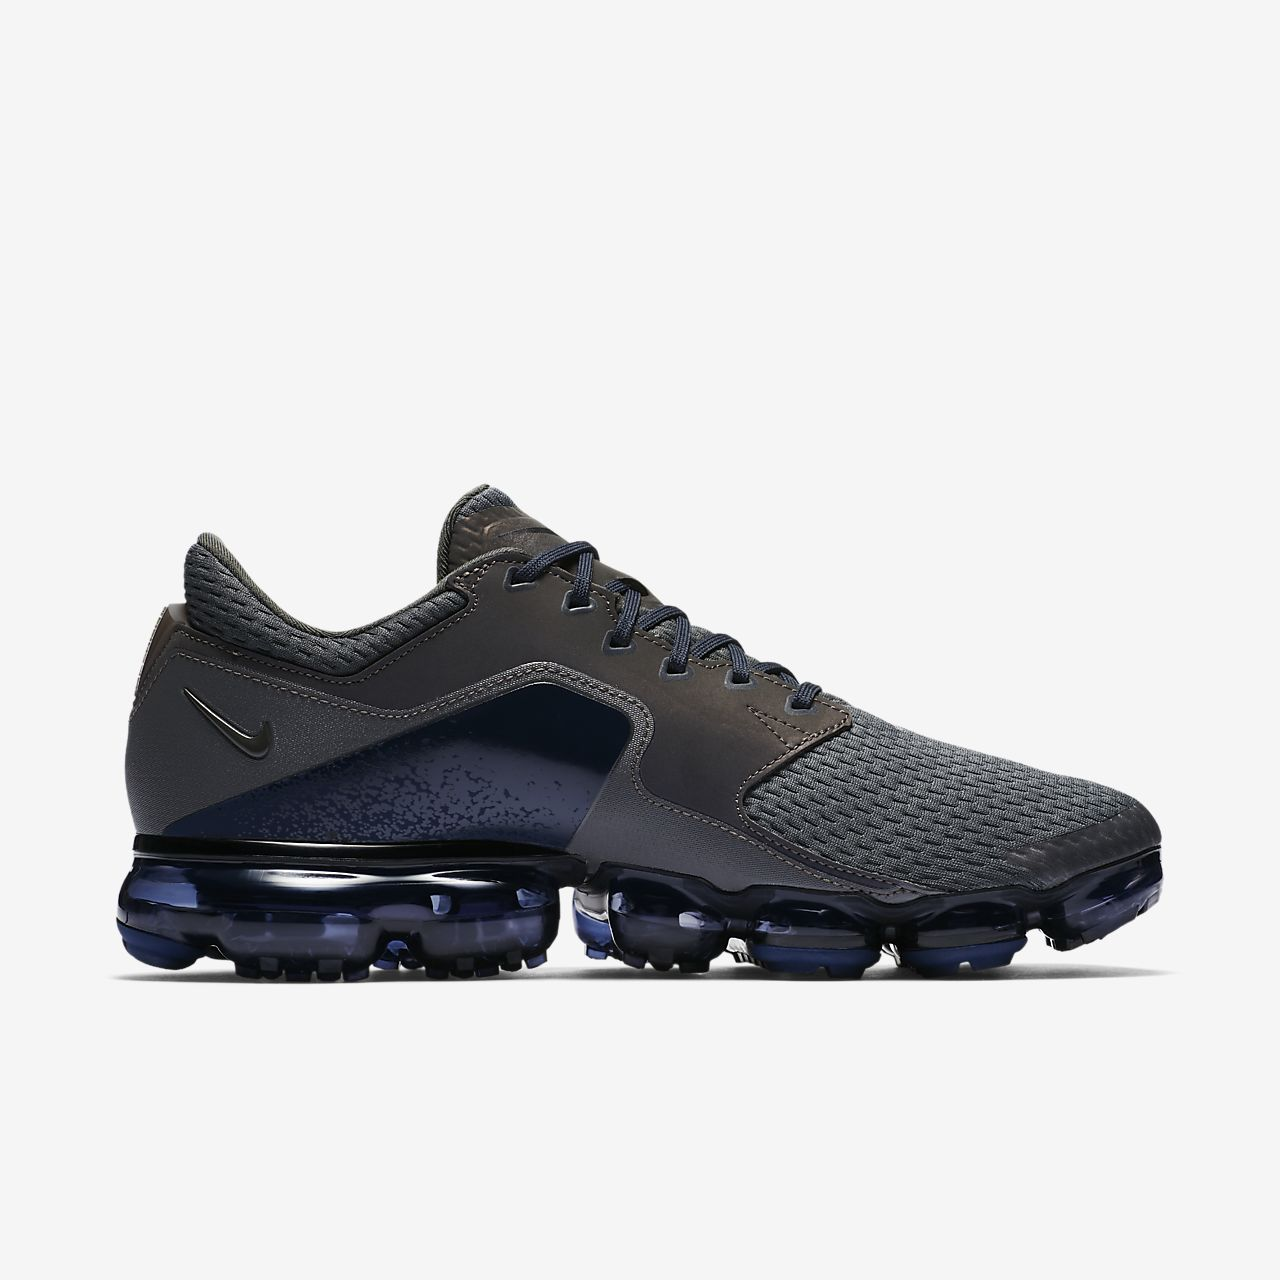 chaussure de running nike air vapormax r pour homme fr. Black Bedroom Furniture Sets. Home Design Ideas